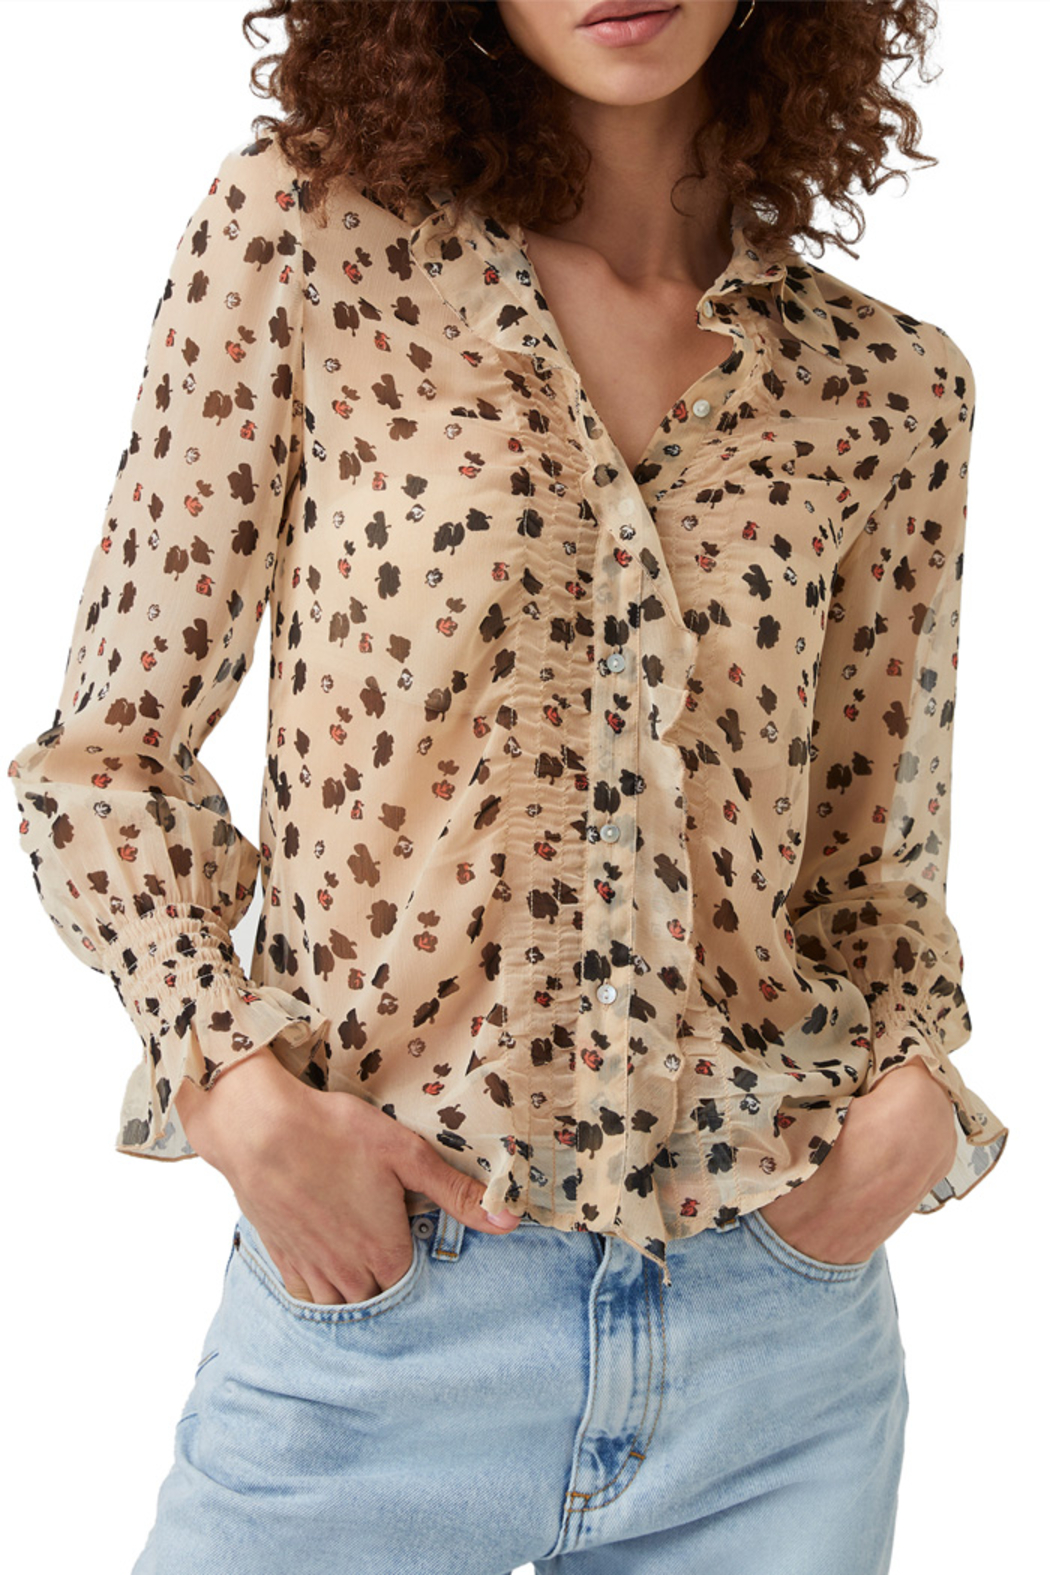 French Connection Dolores Crinkle Sheer Shirt - Main Image